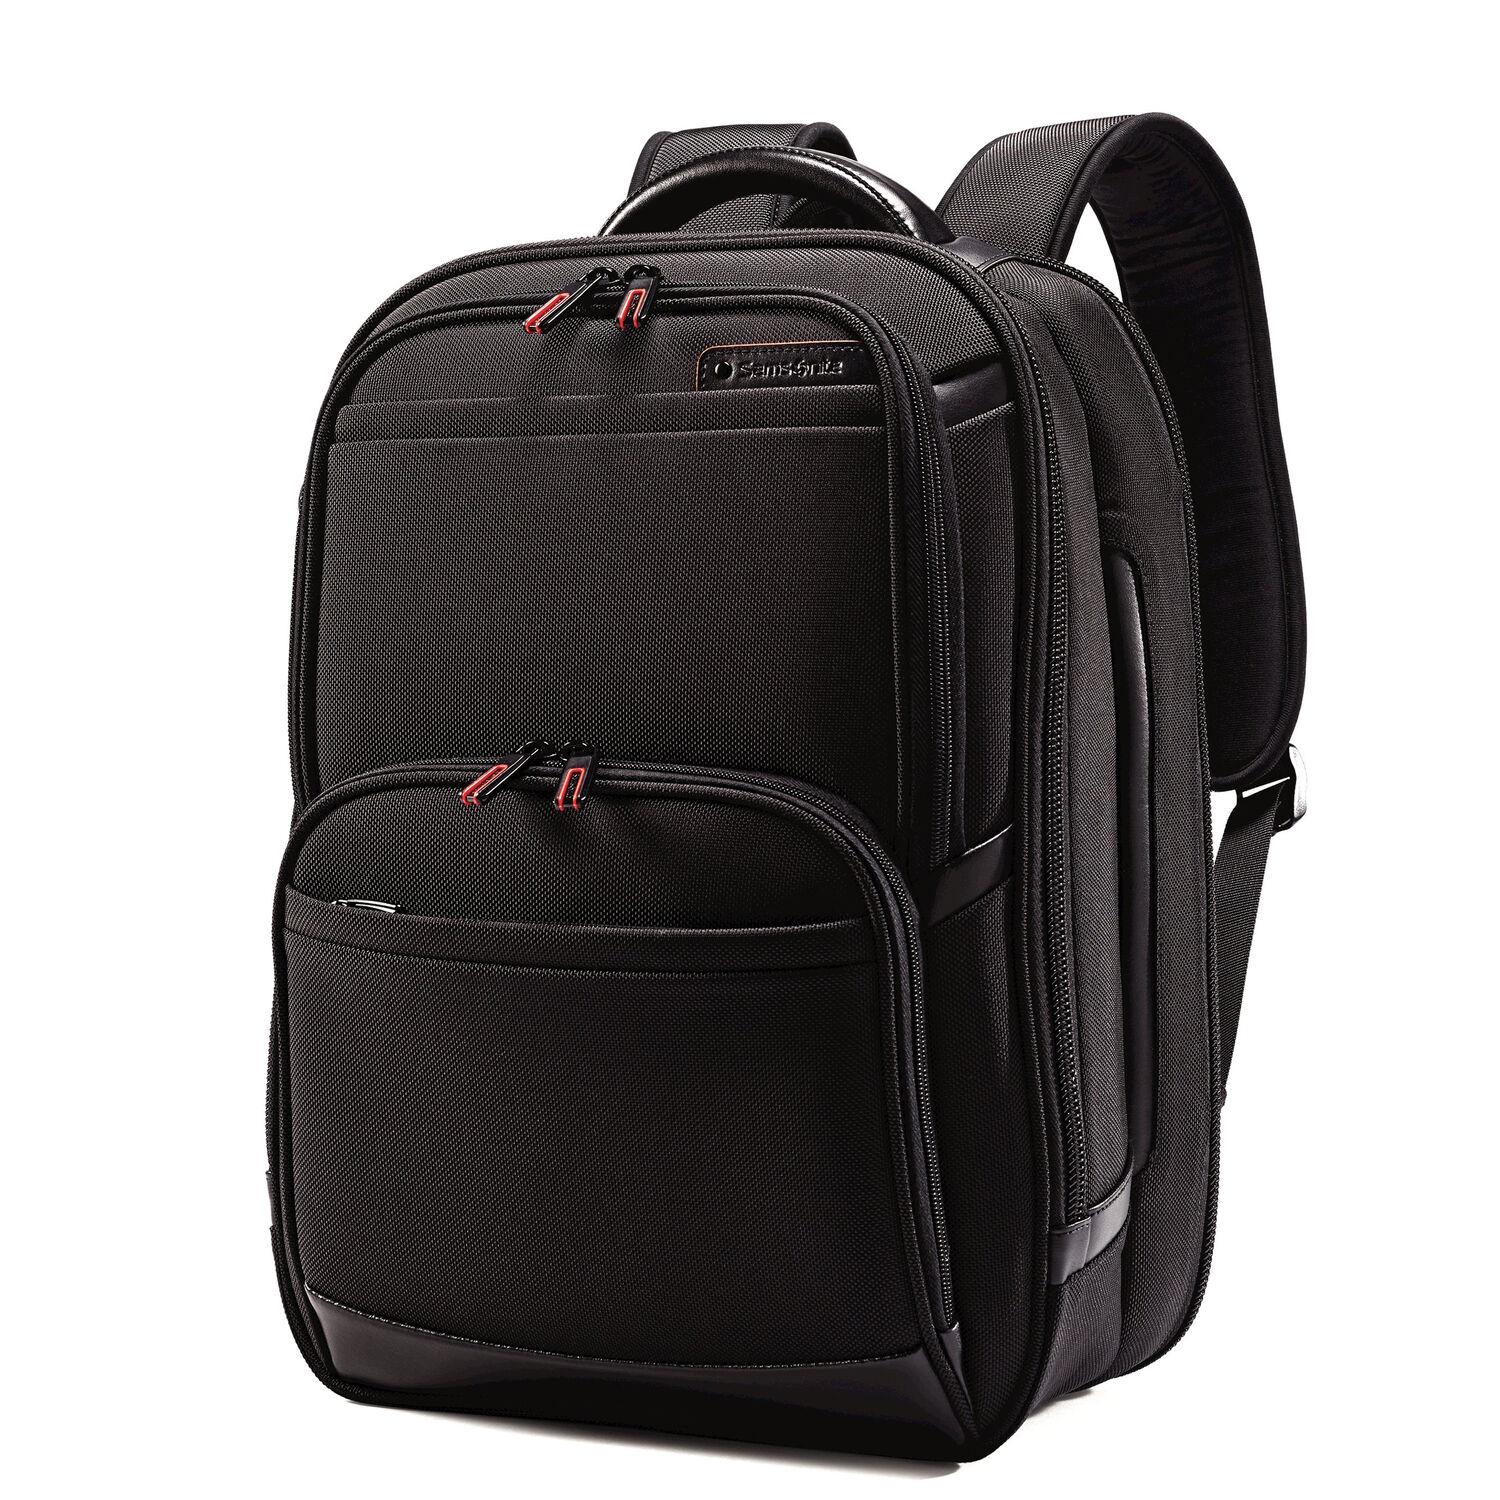 a782a72b3 Samsonite Pro 4 DLX Perfect Fit Urban Laptop Backpack in the color Black.